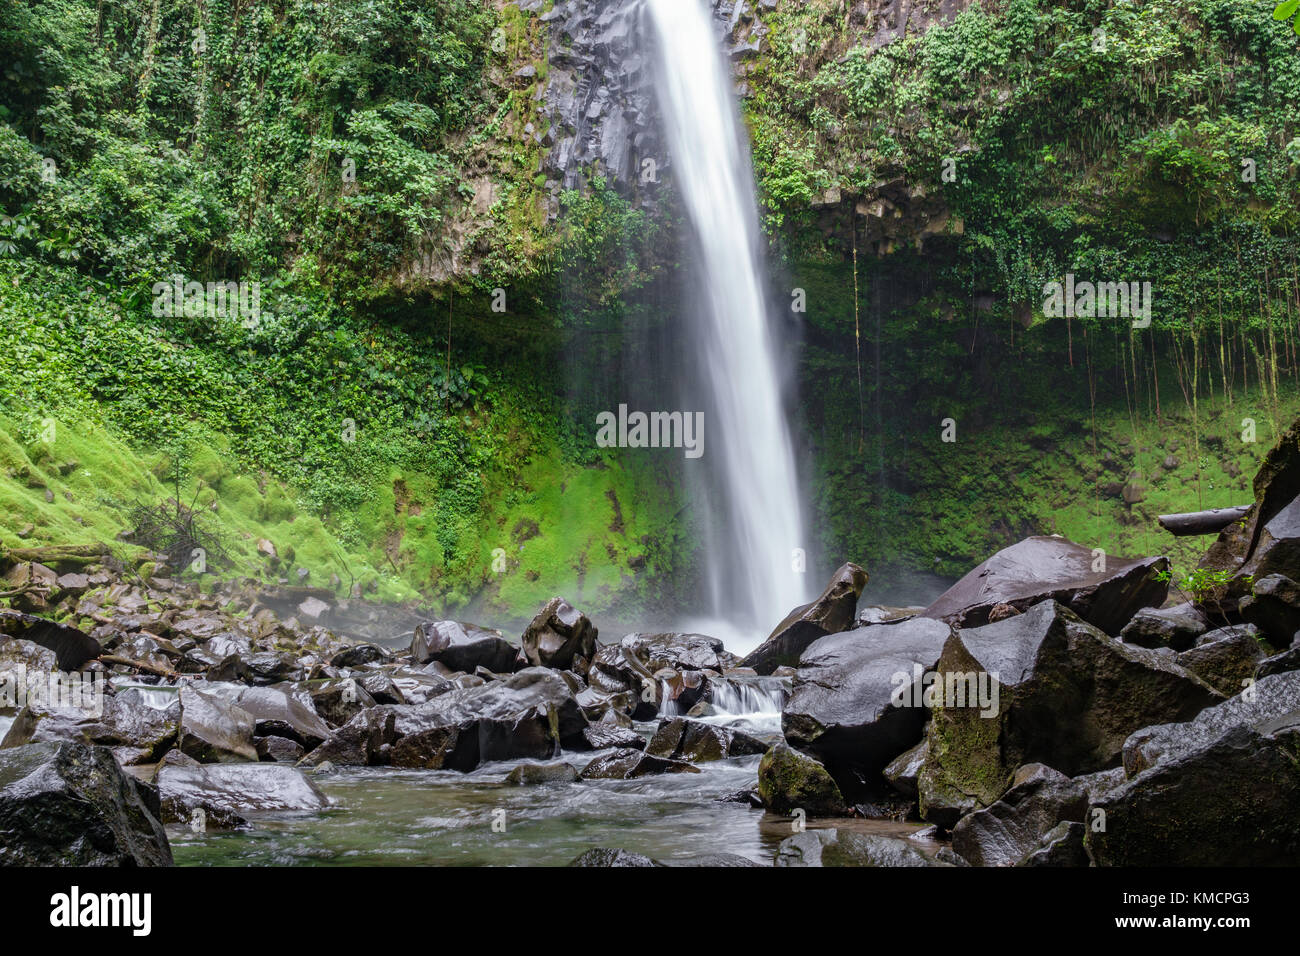 The La Fortuna Waterfall bottom view in Costa Rica - Stock Image